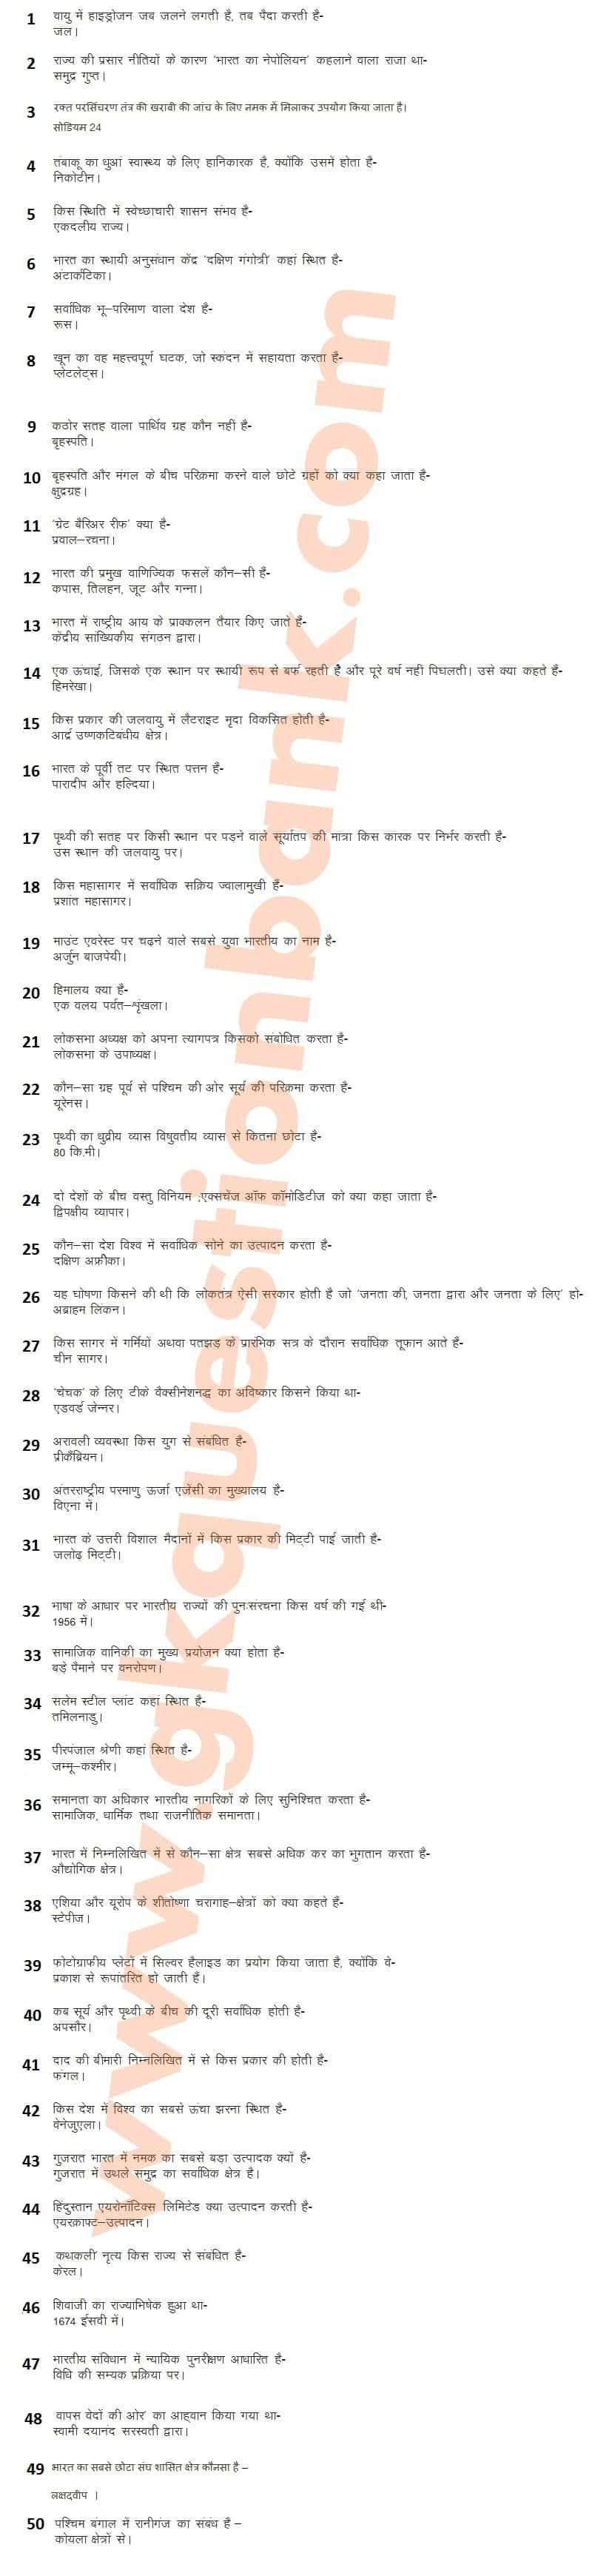 General Knowledge Question Answers In Hindi Gkquestionbank In 2021 This Or That Questions General Knowledge Gk Questions And Answers